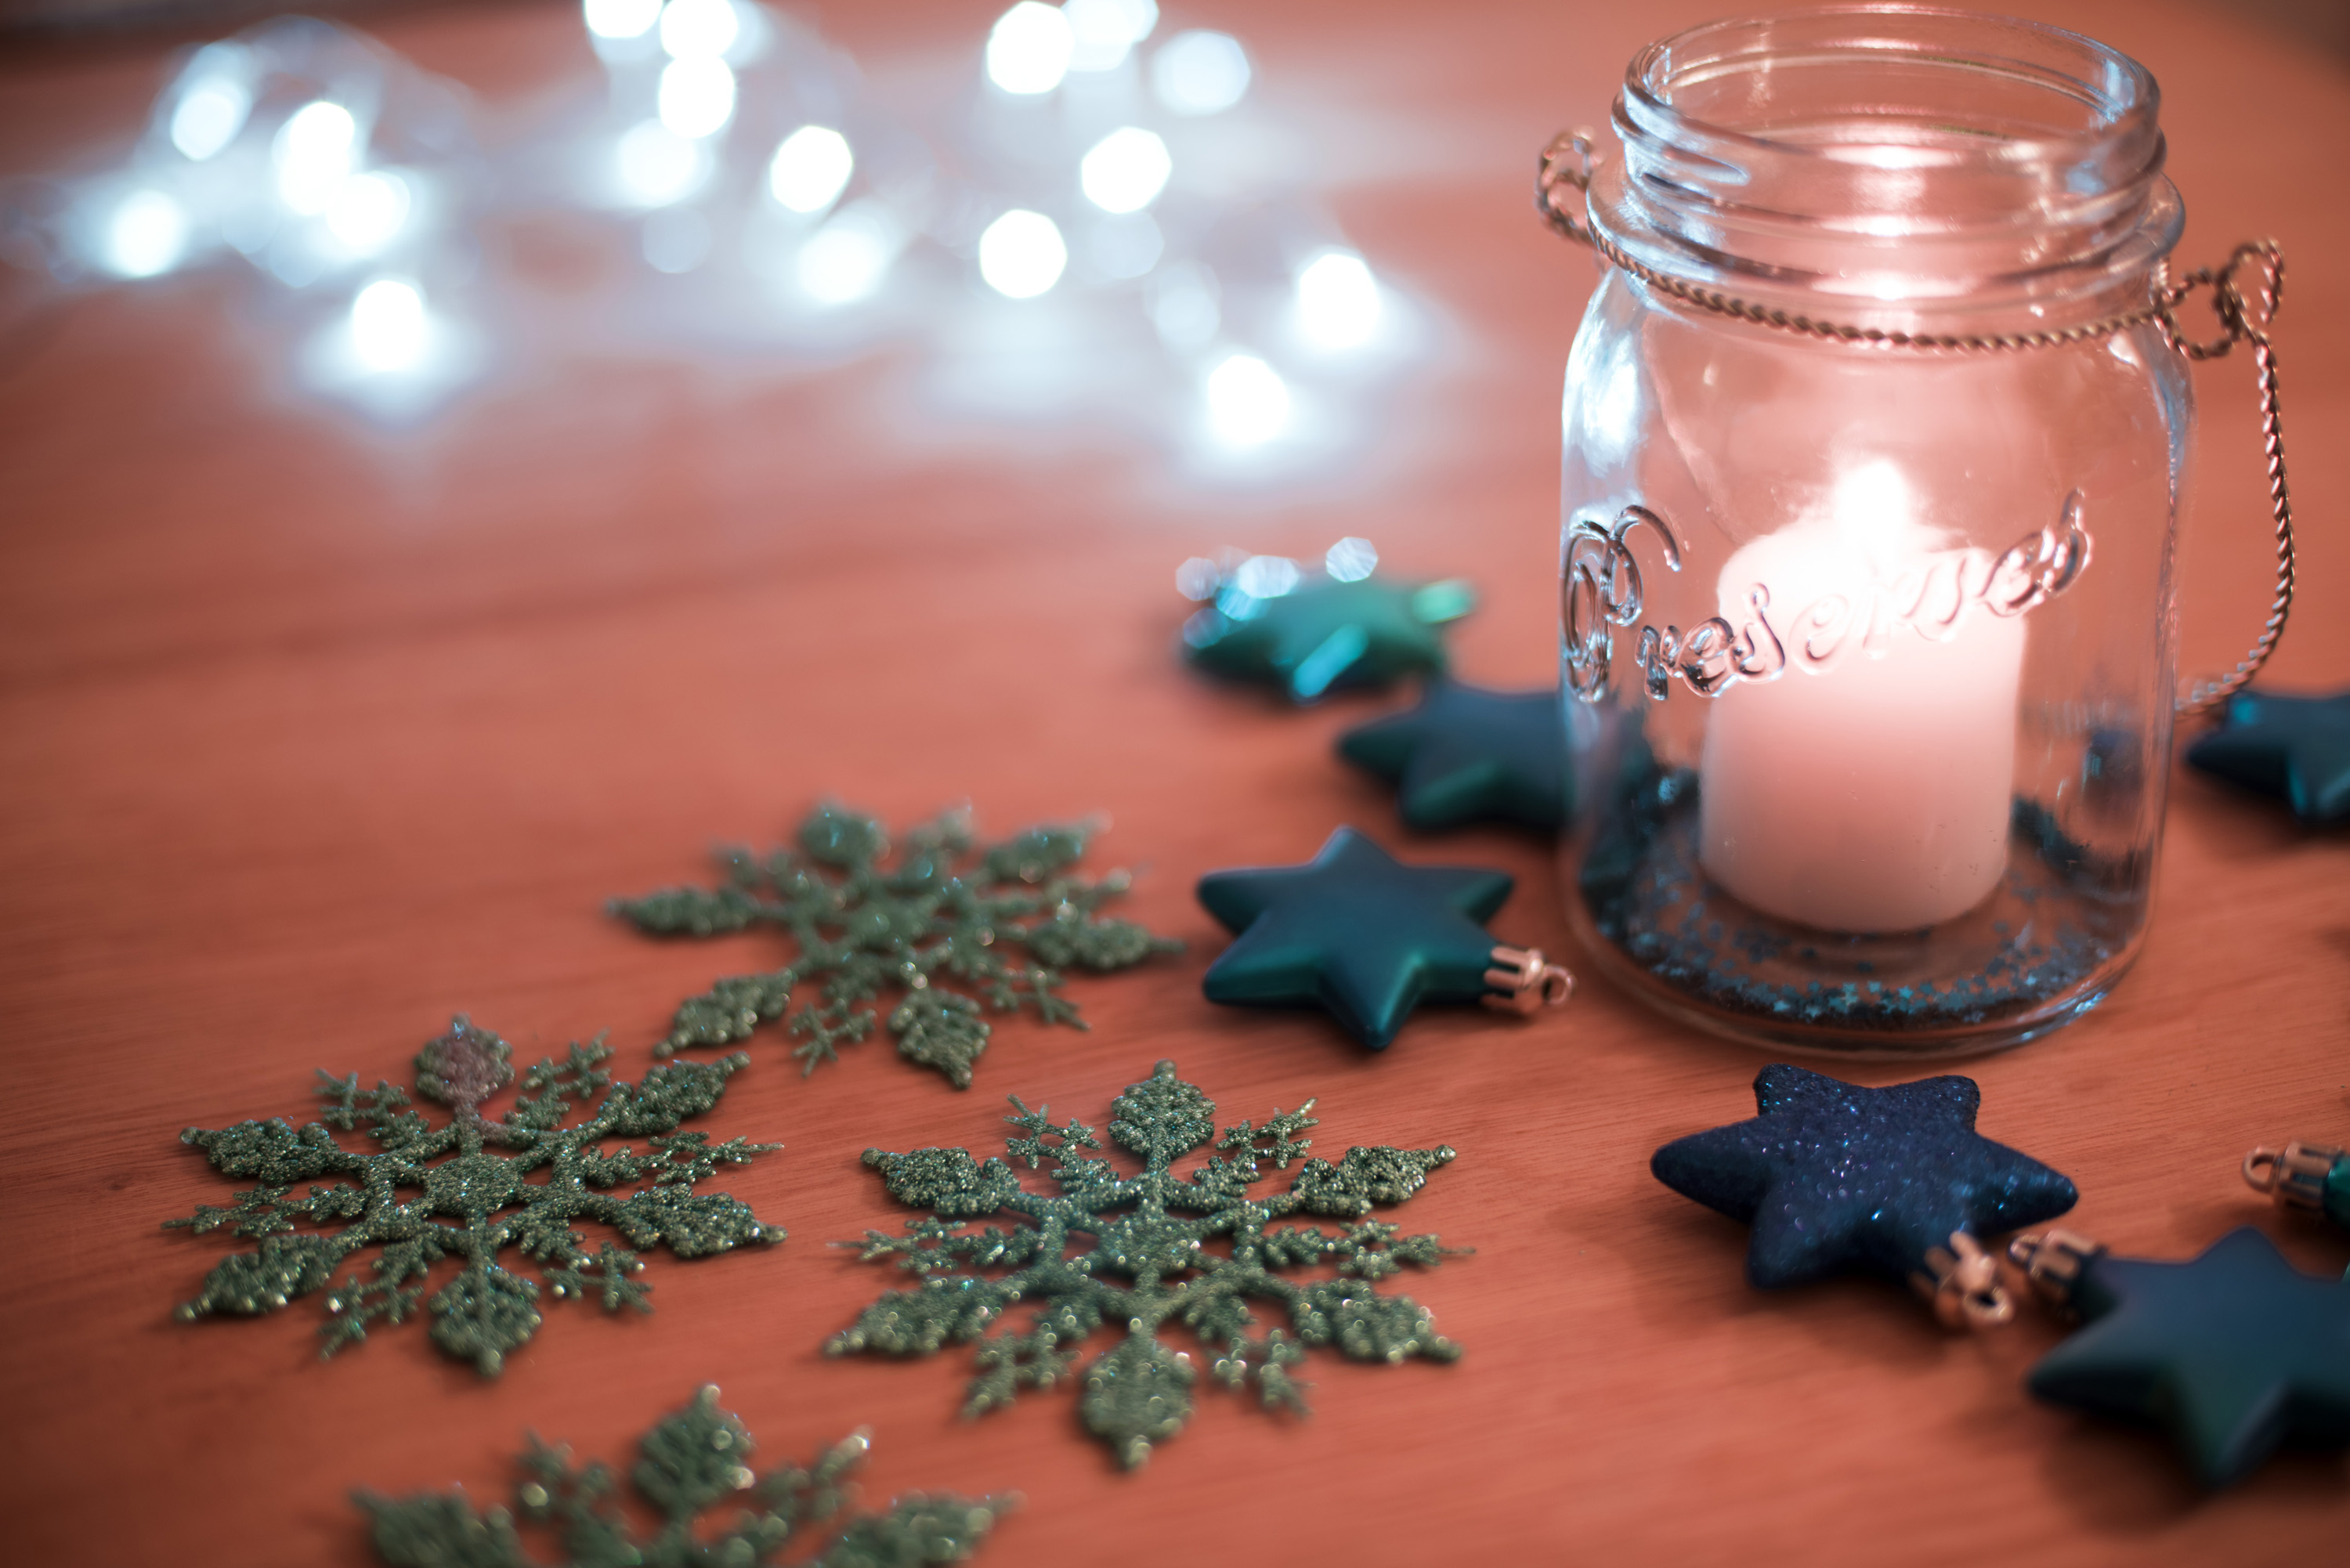 Burning Christmas candle in a glass jar casting a soft glow over surrounding snowflake and star decorations with a party light bokeh background